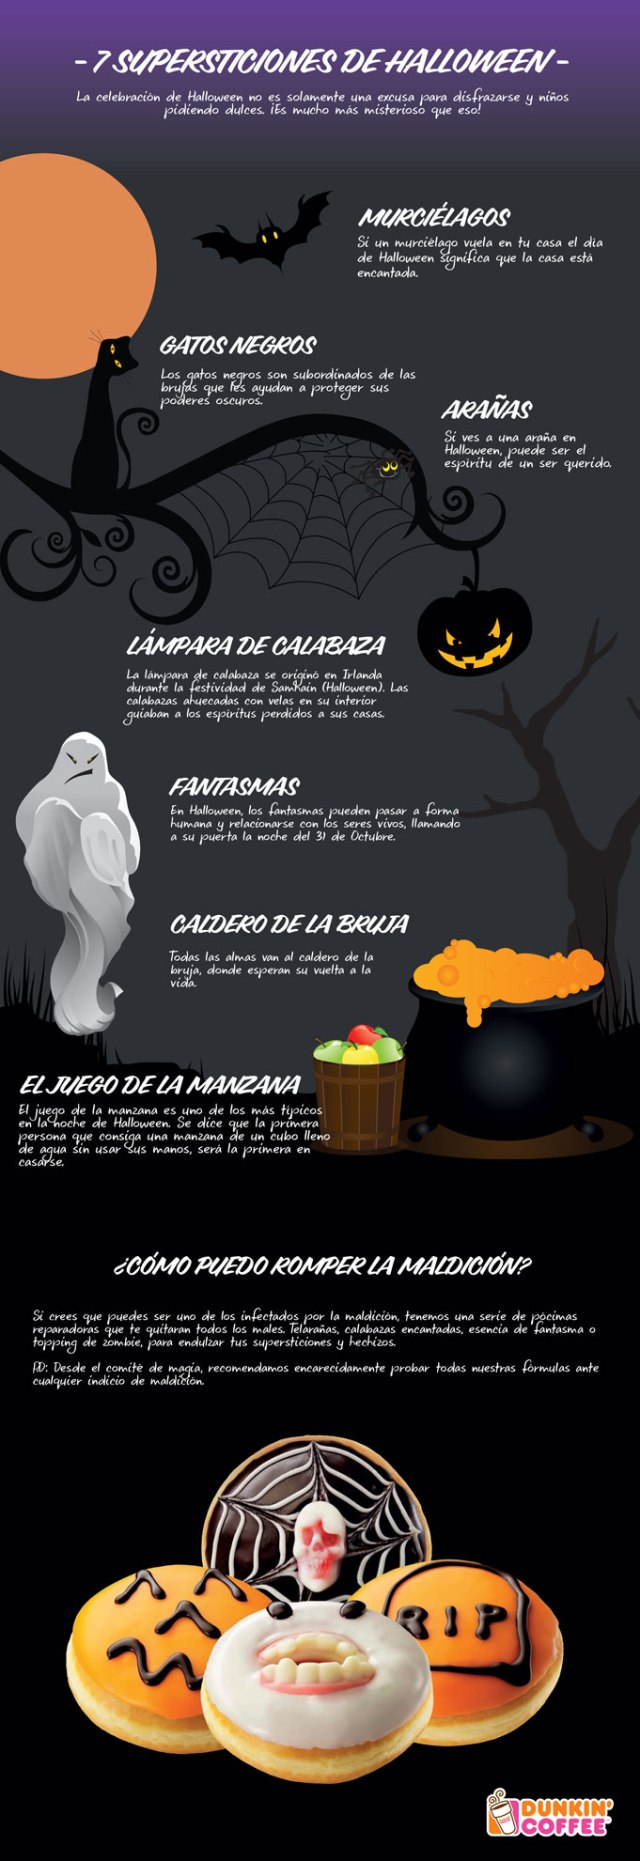 7 supersticiones de Halloween